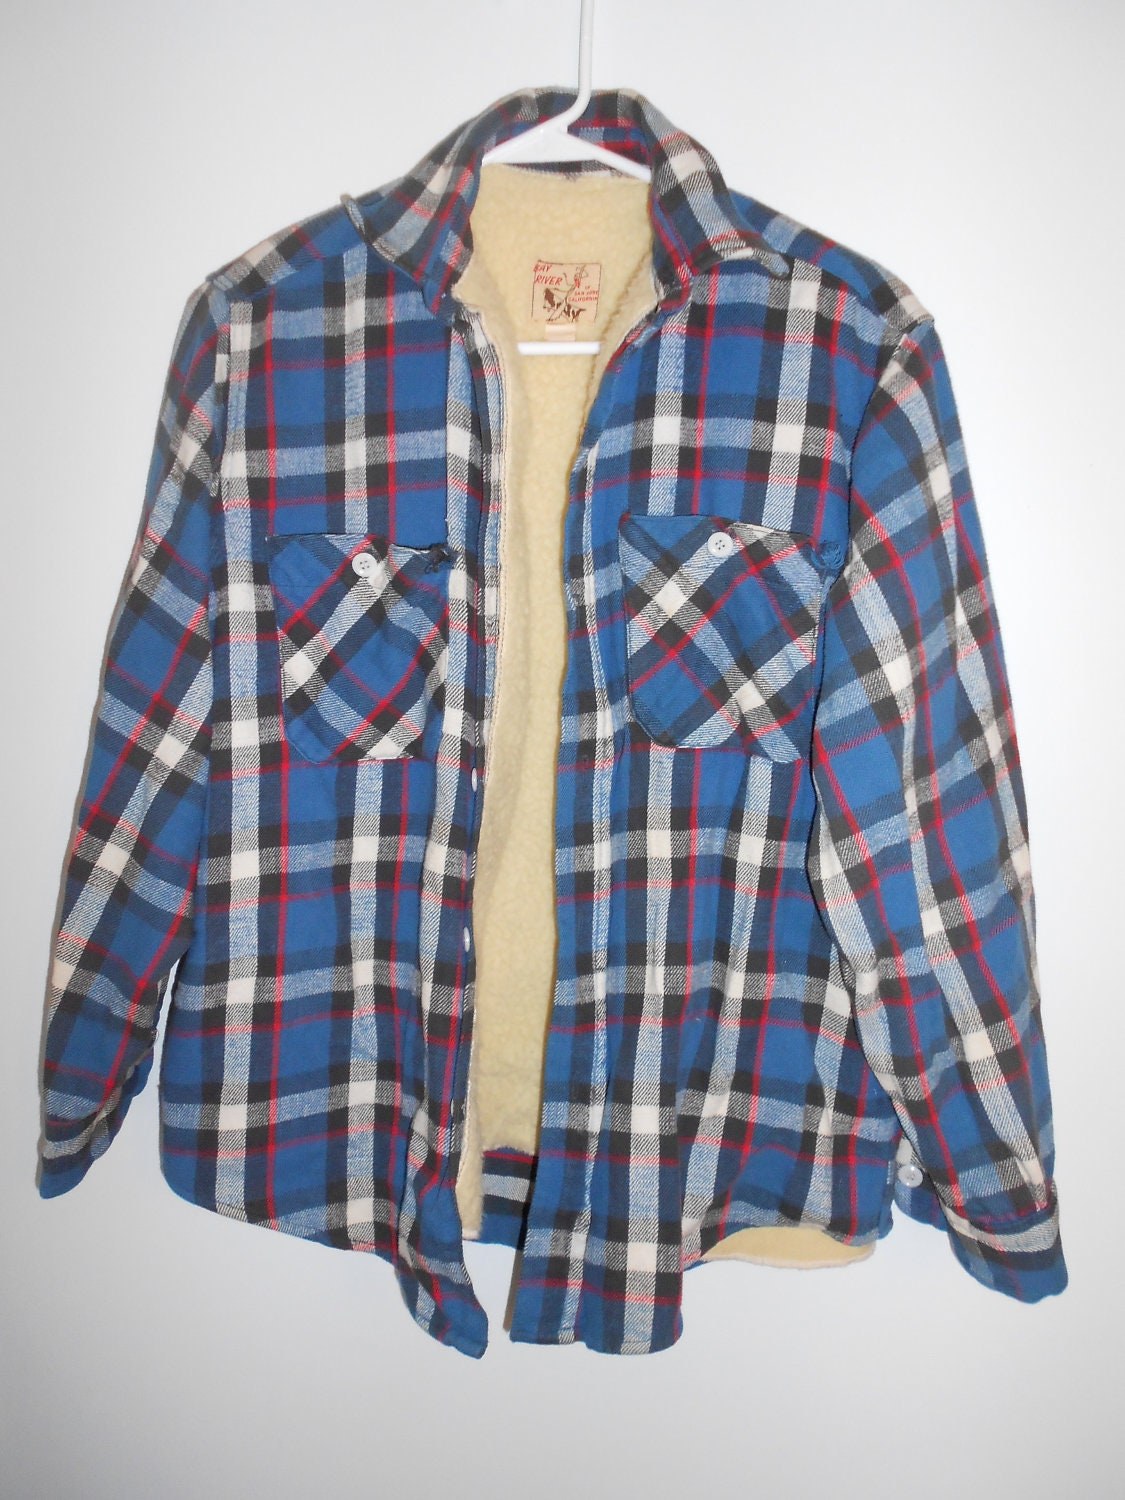 plaid flannel shirt jacket fleece lined vintage